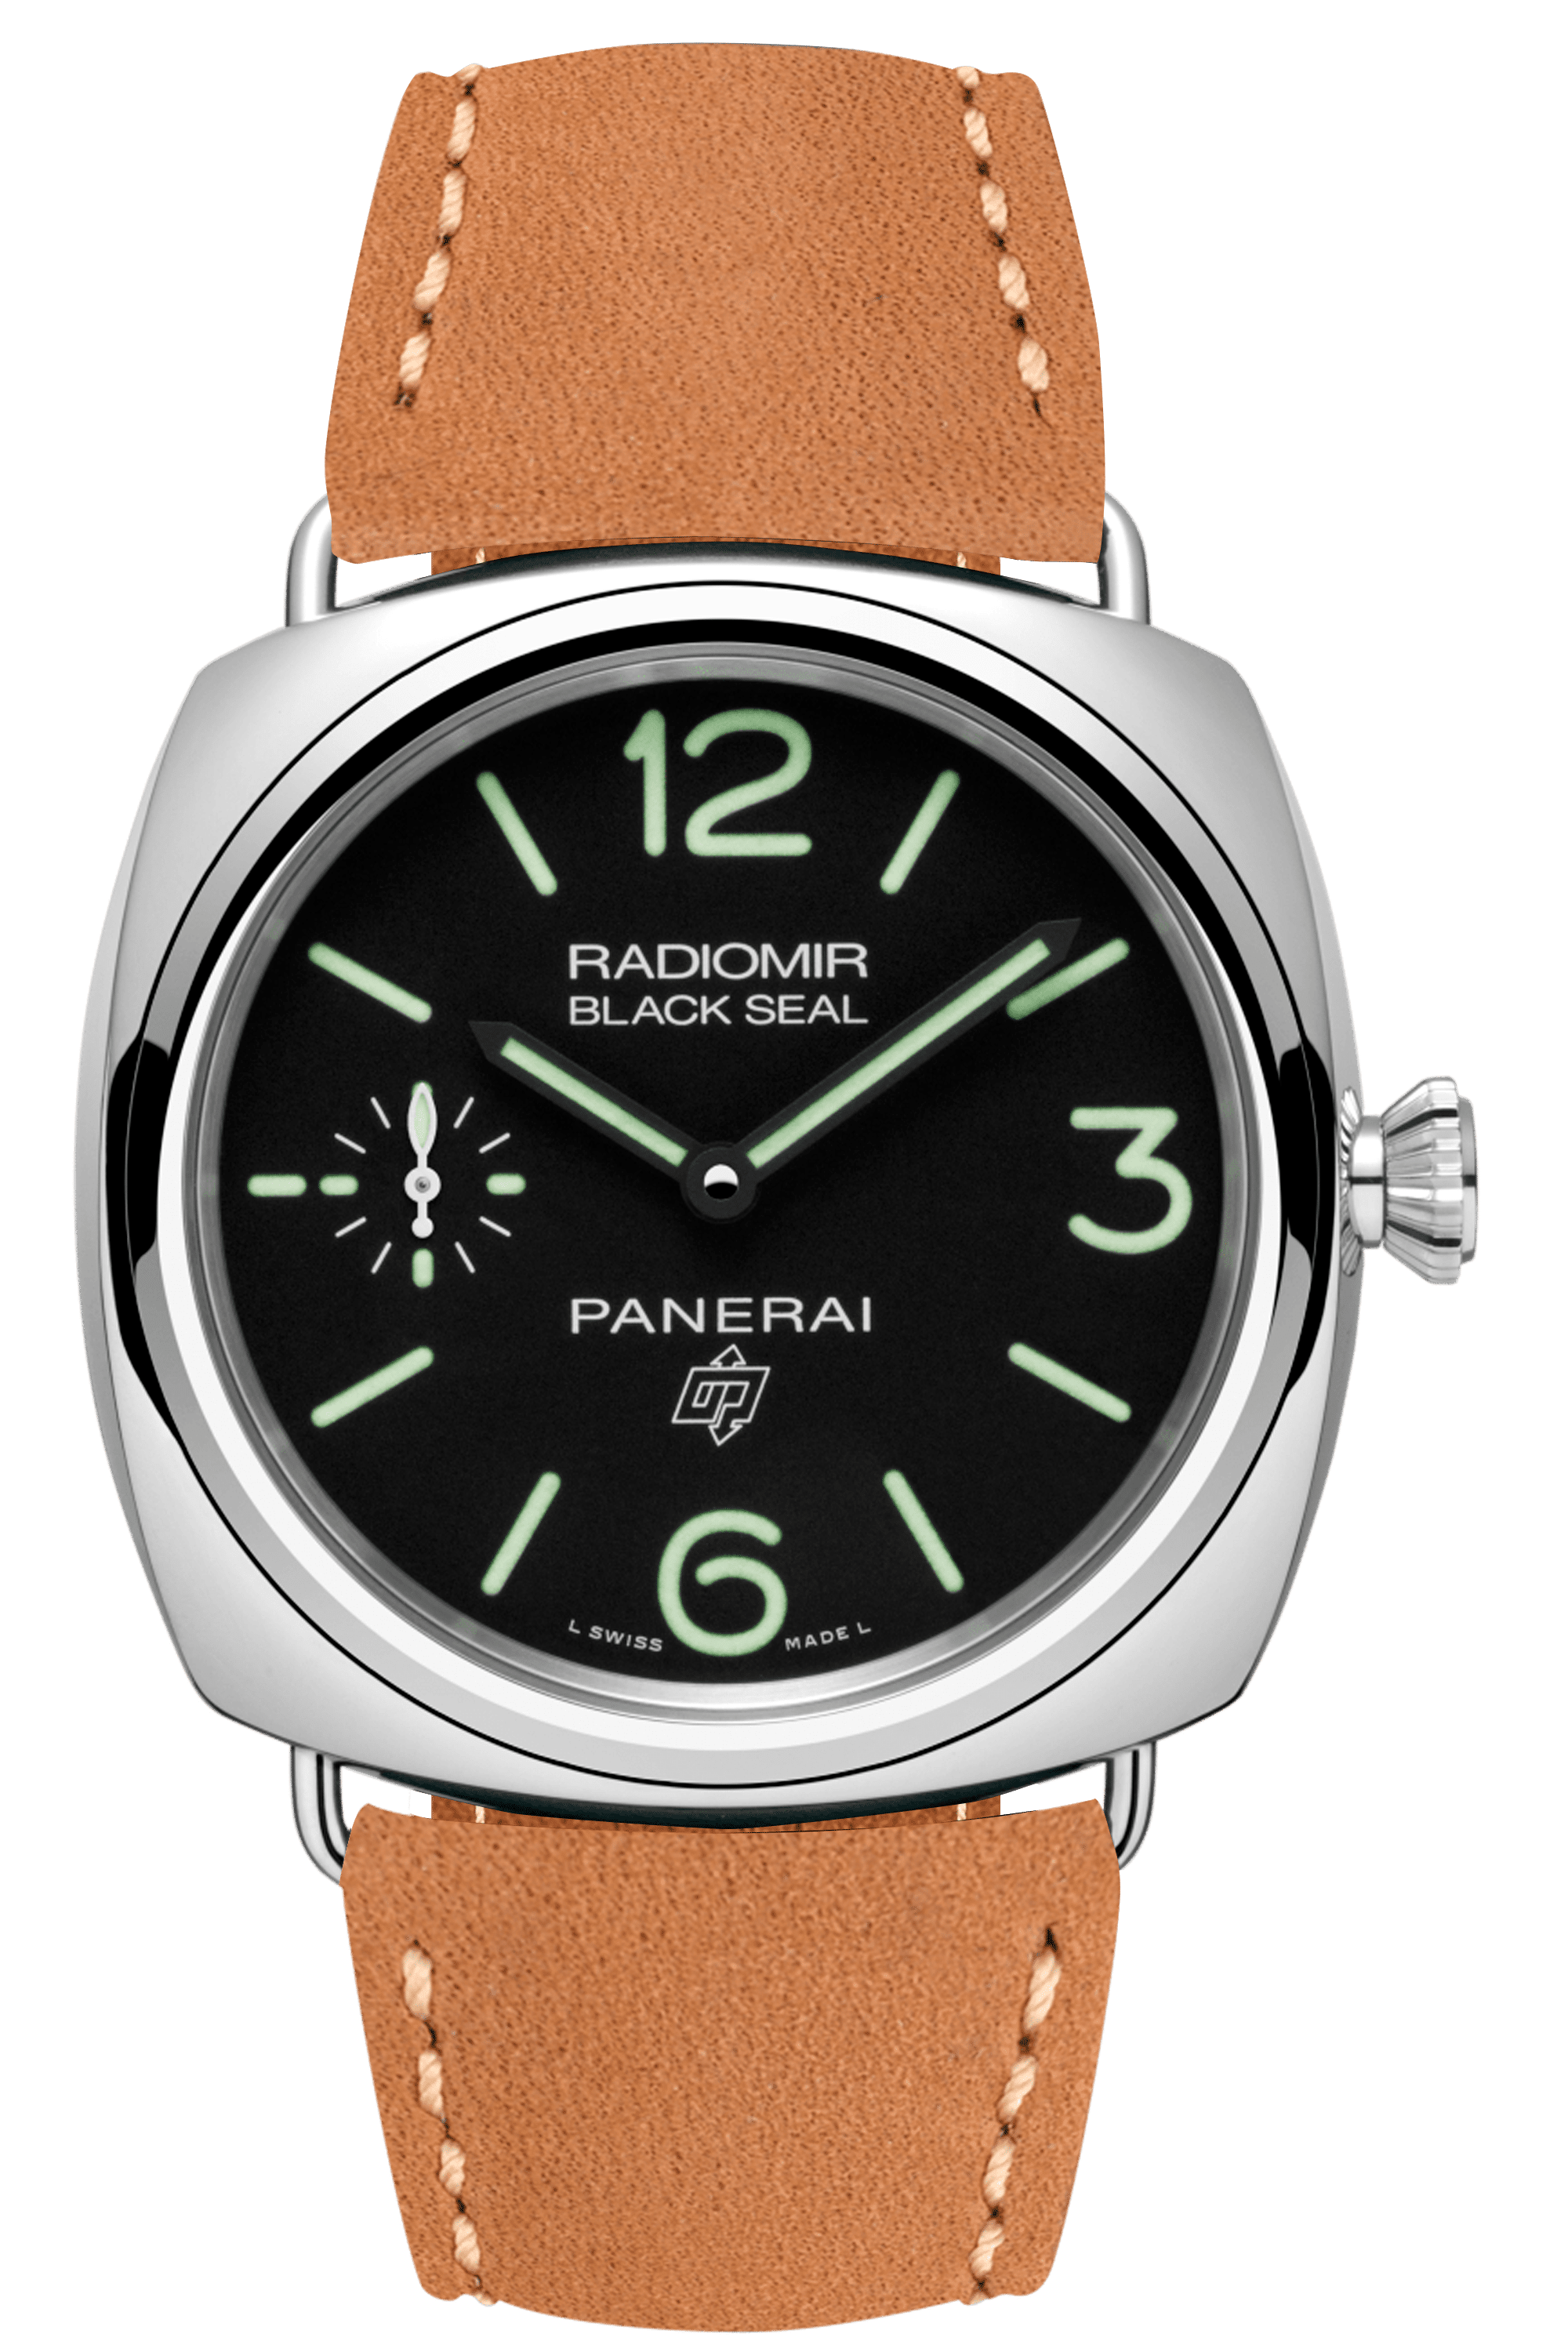 PNPAM00754 - Radiomir Black Seal Logo - 45mm